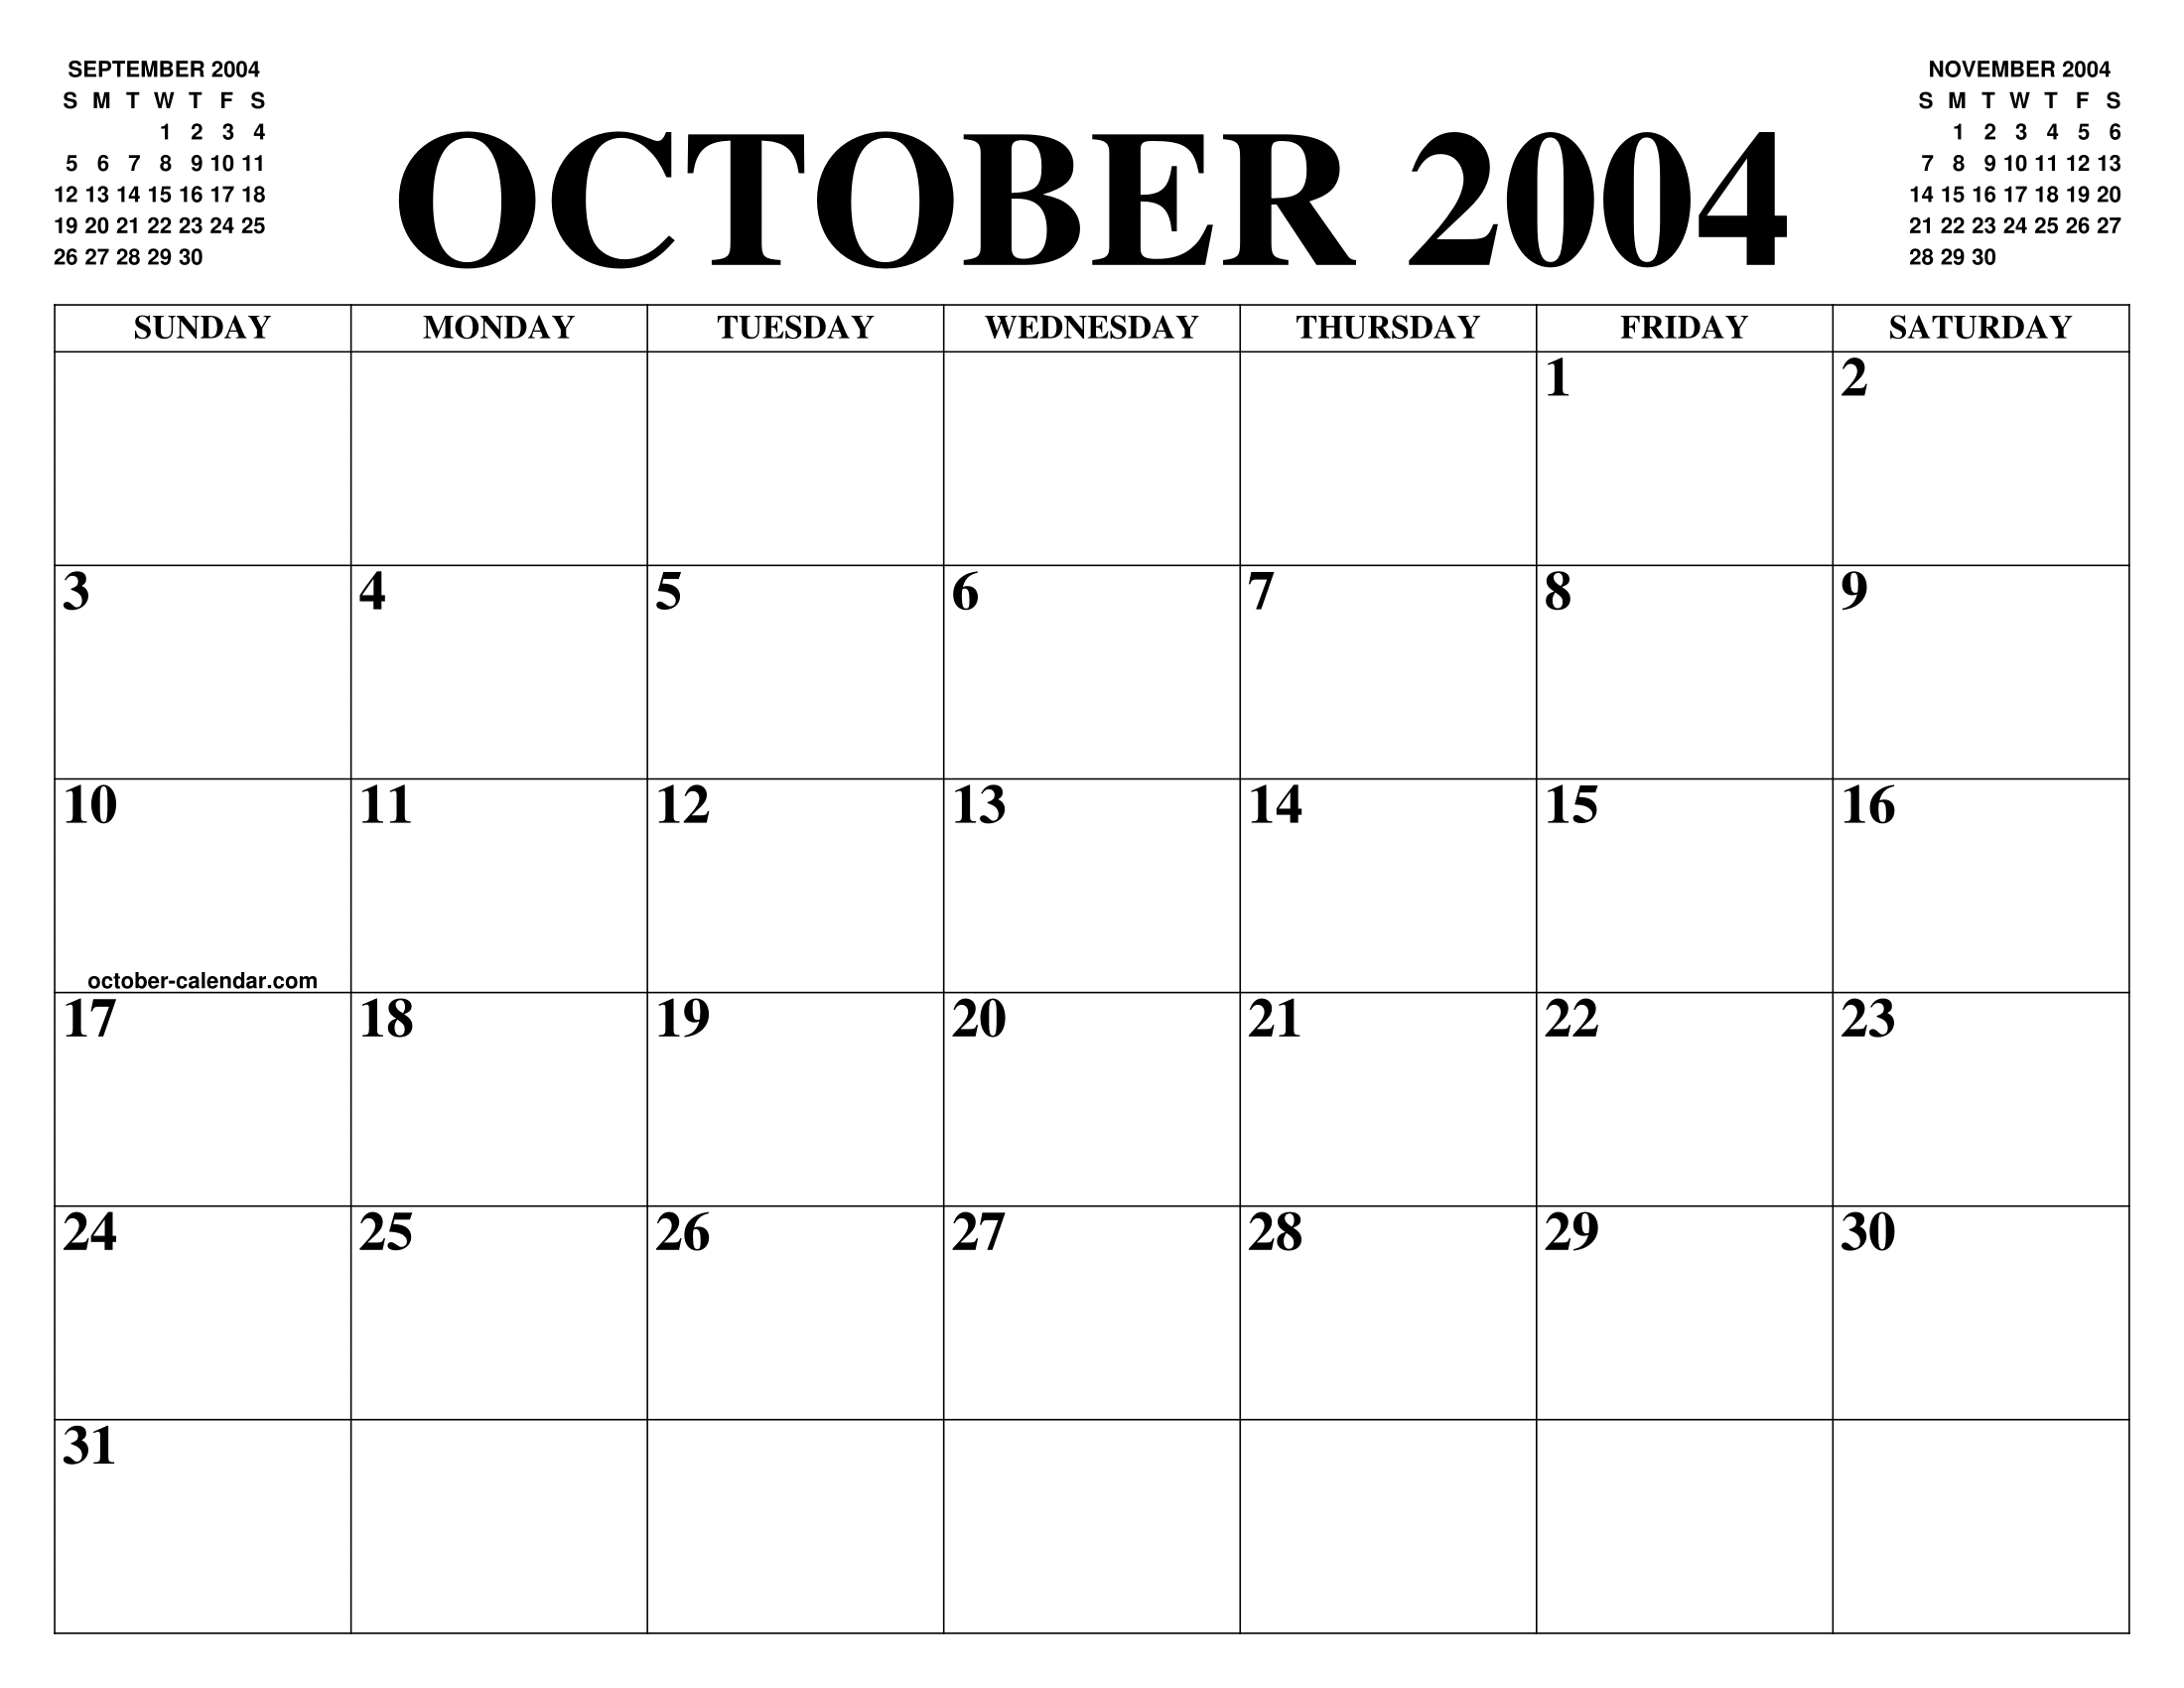 OCTOBER 2004 CALENDAR OF THE MONTH: FREE PRINTABLE OCTOBER ...